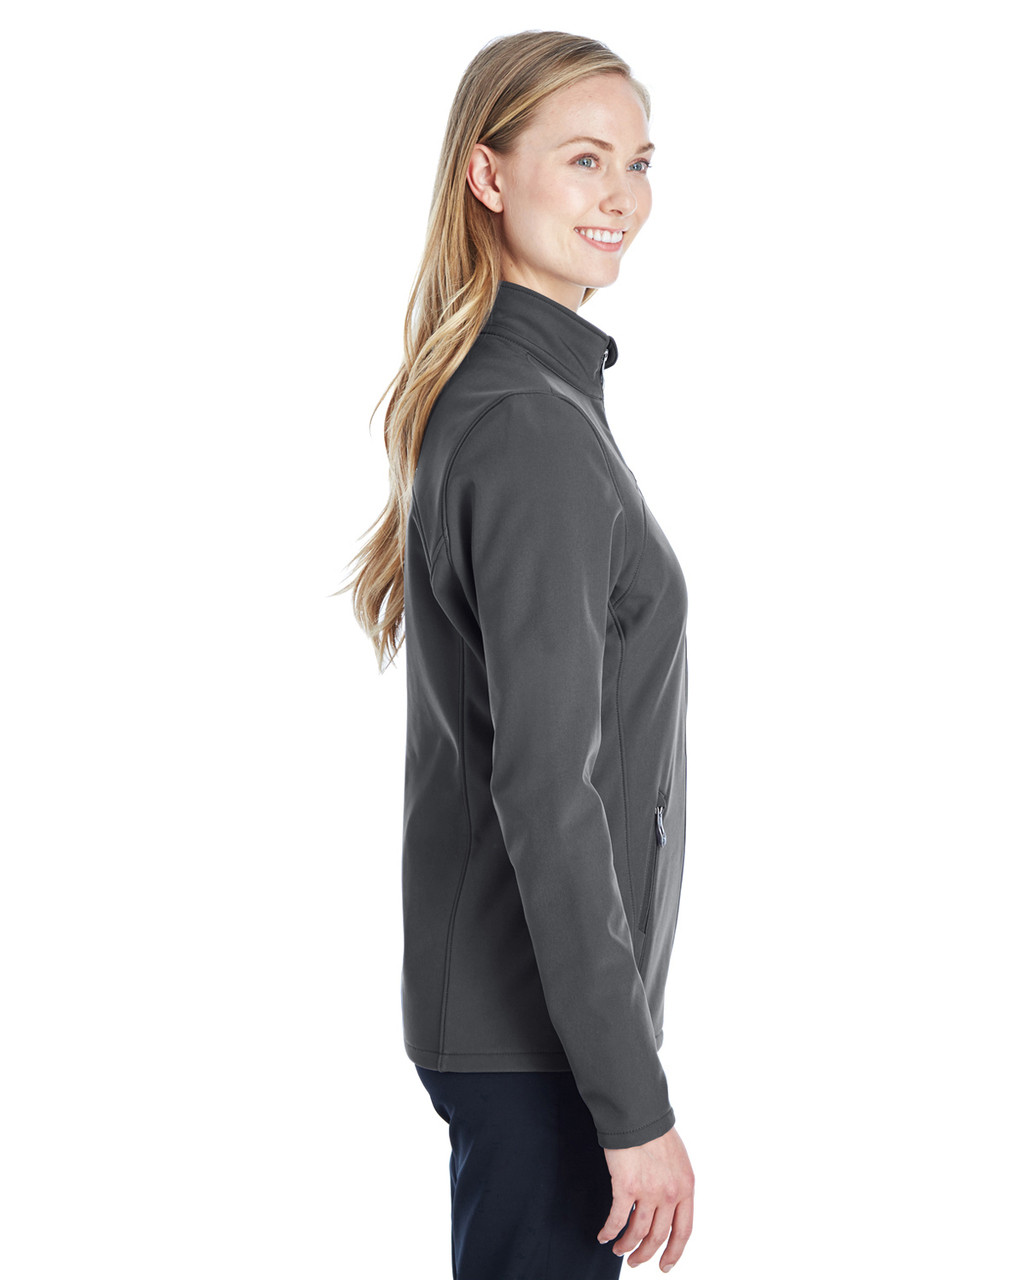 Polar/White, Side - 187337 Spyder Ladies' Transport Softshell Jacket | BlankClothing.ca